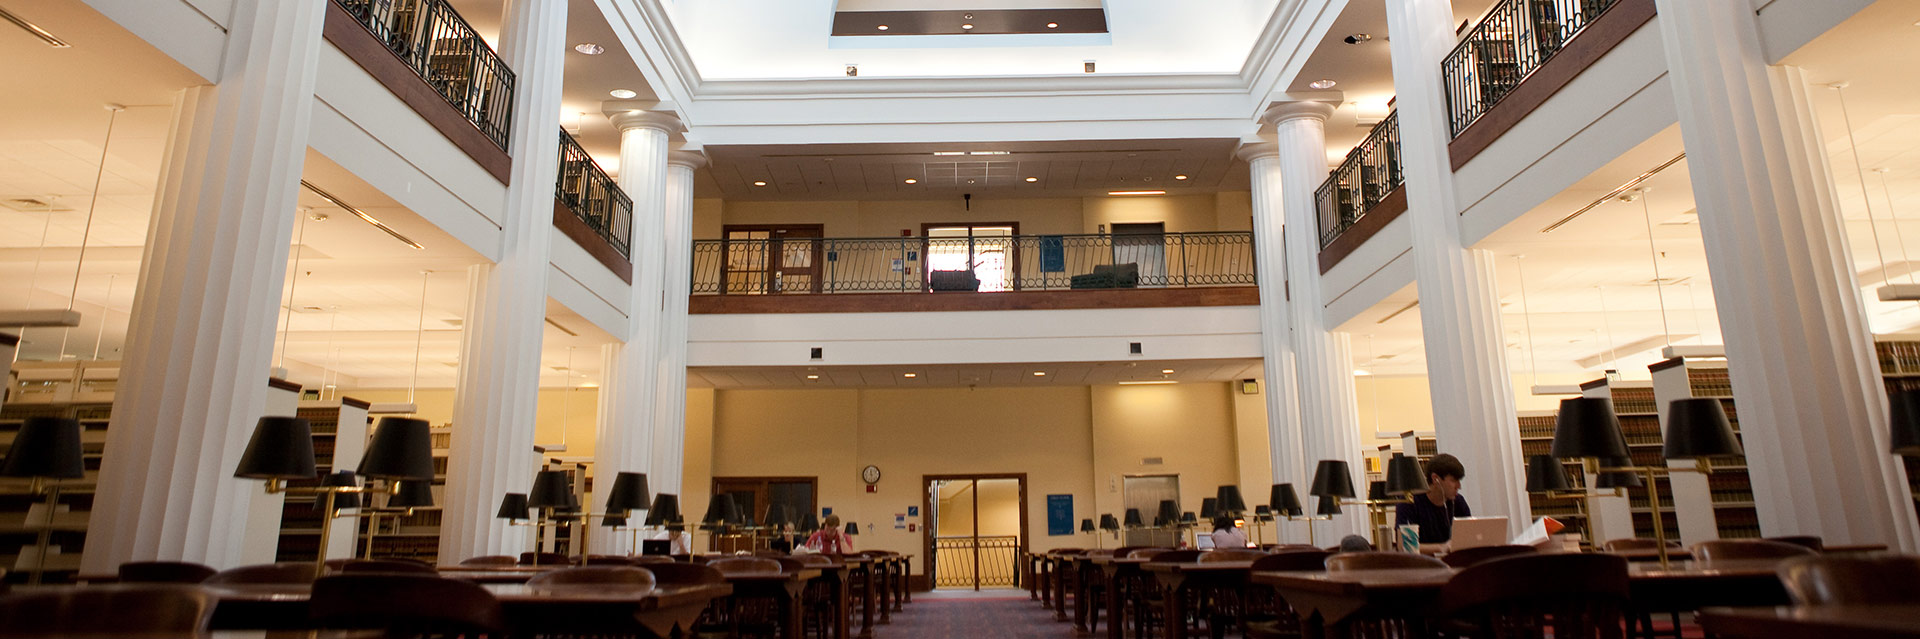 law library interior Header